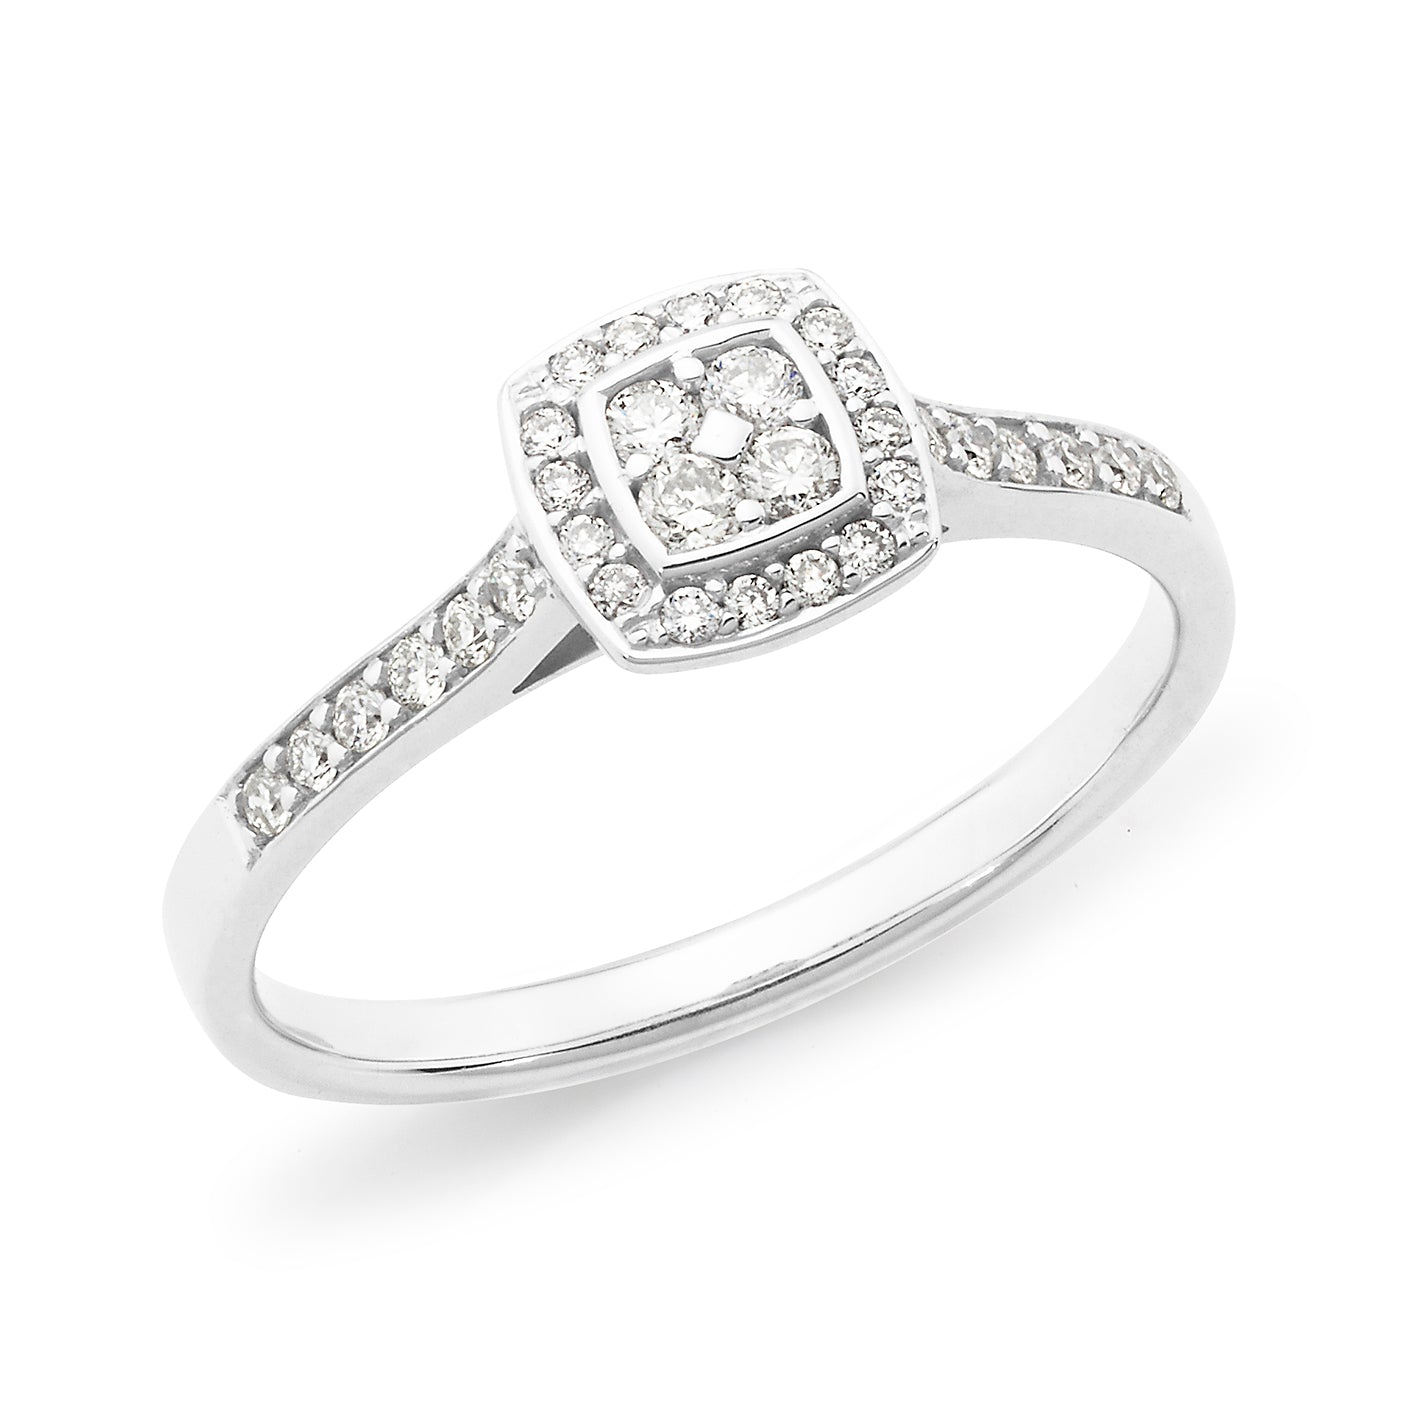 DIAMOND BEAD SET DIAMOND (SI3 JK) DRESS RING IN 9CT WHITE GOLD TDW 0.25CT